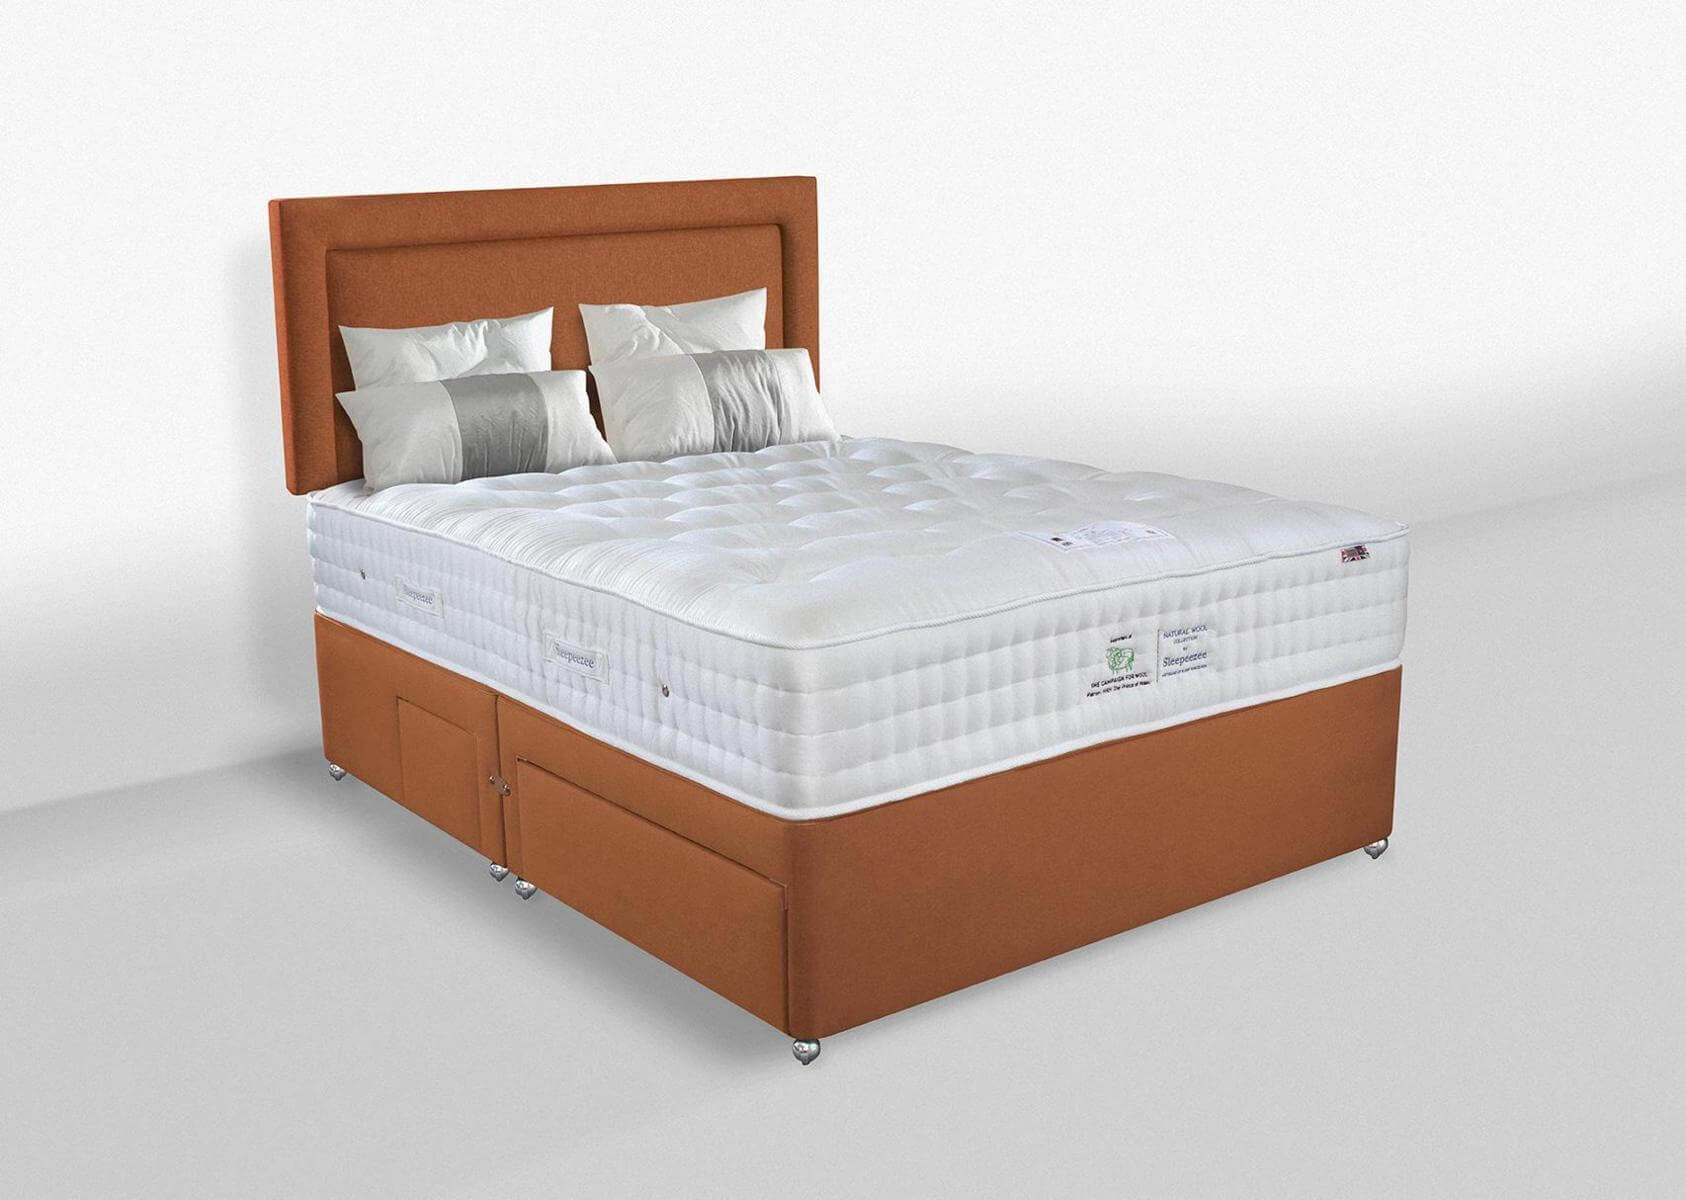 Купить матрас Sleepeezee Wool Superb 2800